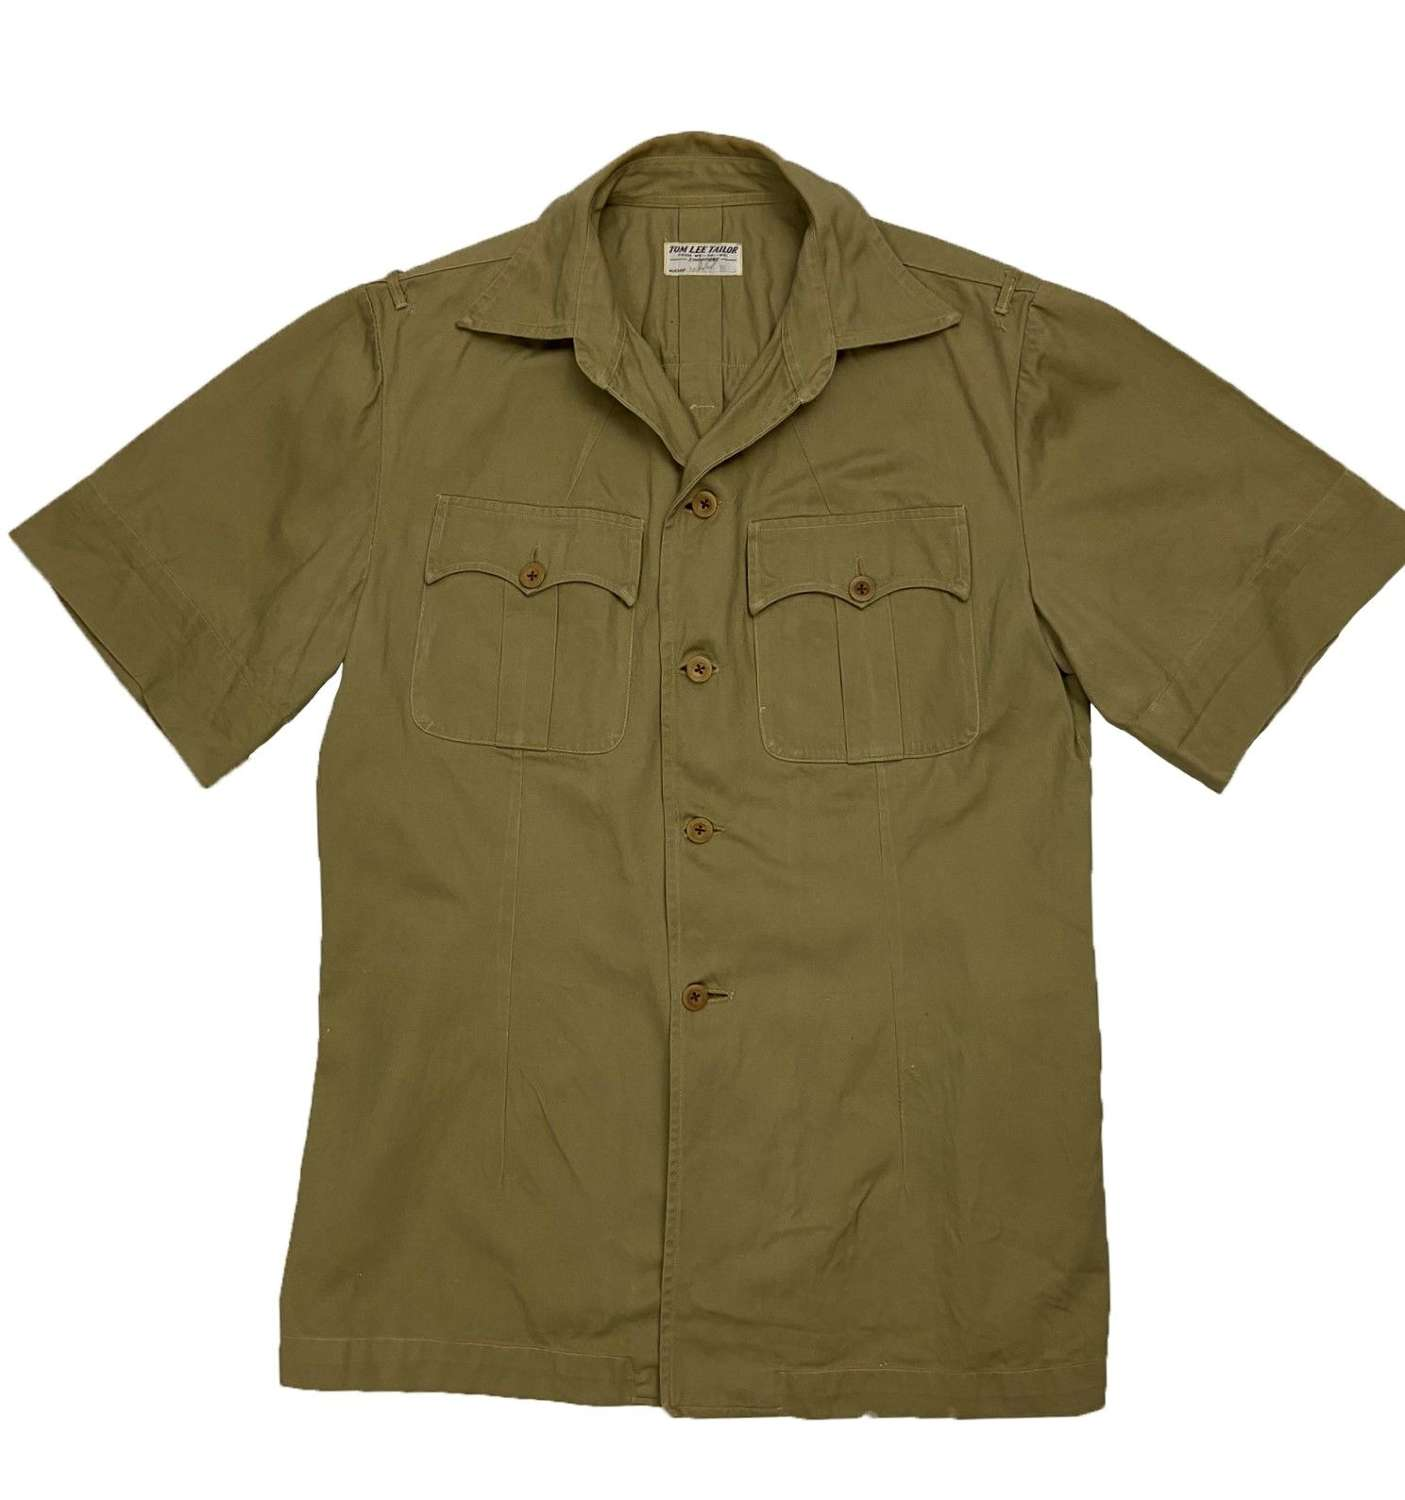 Original 1950s British Military Khaki Drill Shirt by 'Tom Lee Tailor'